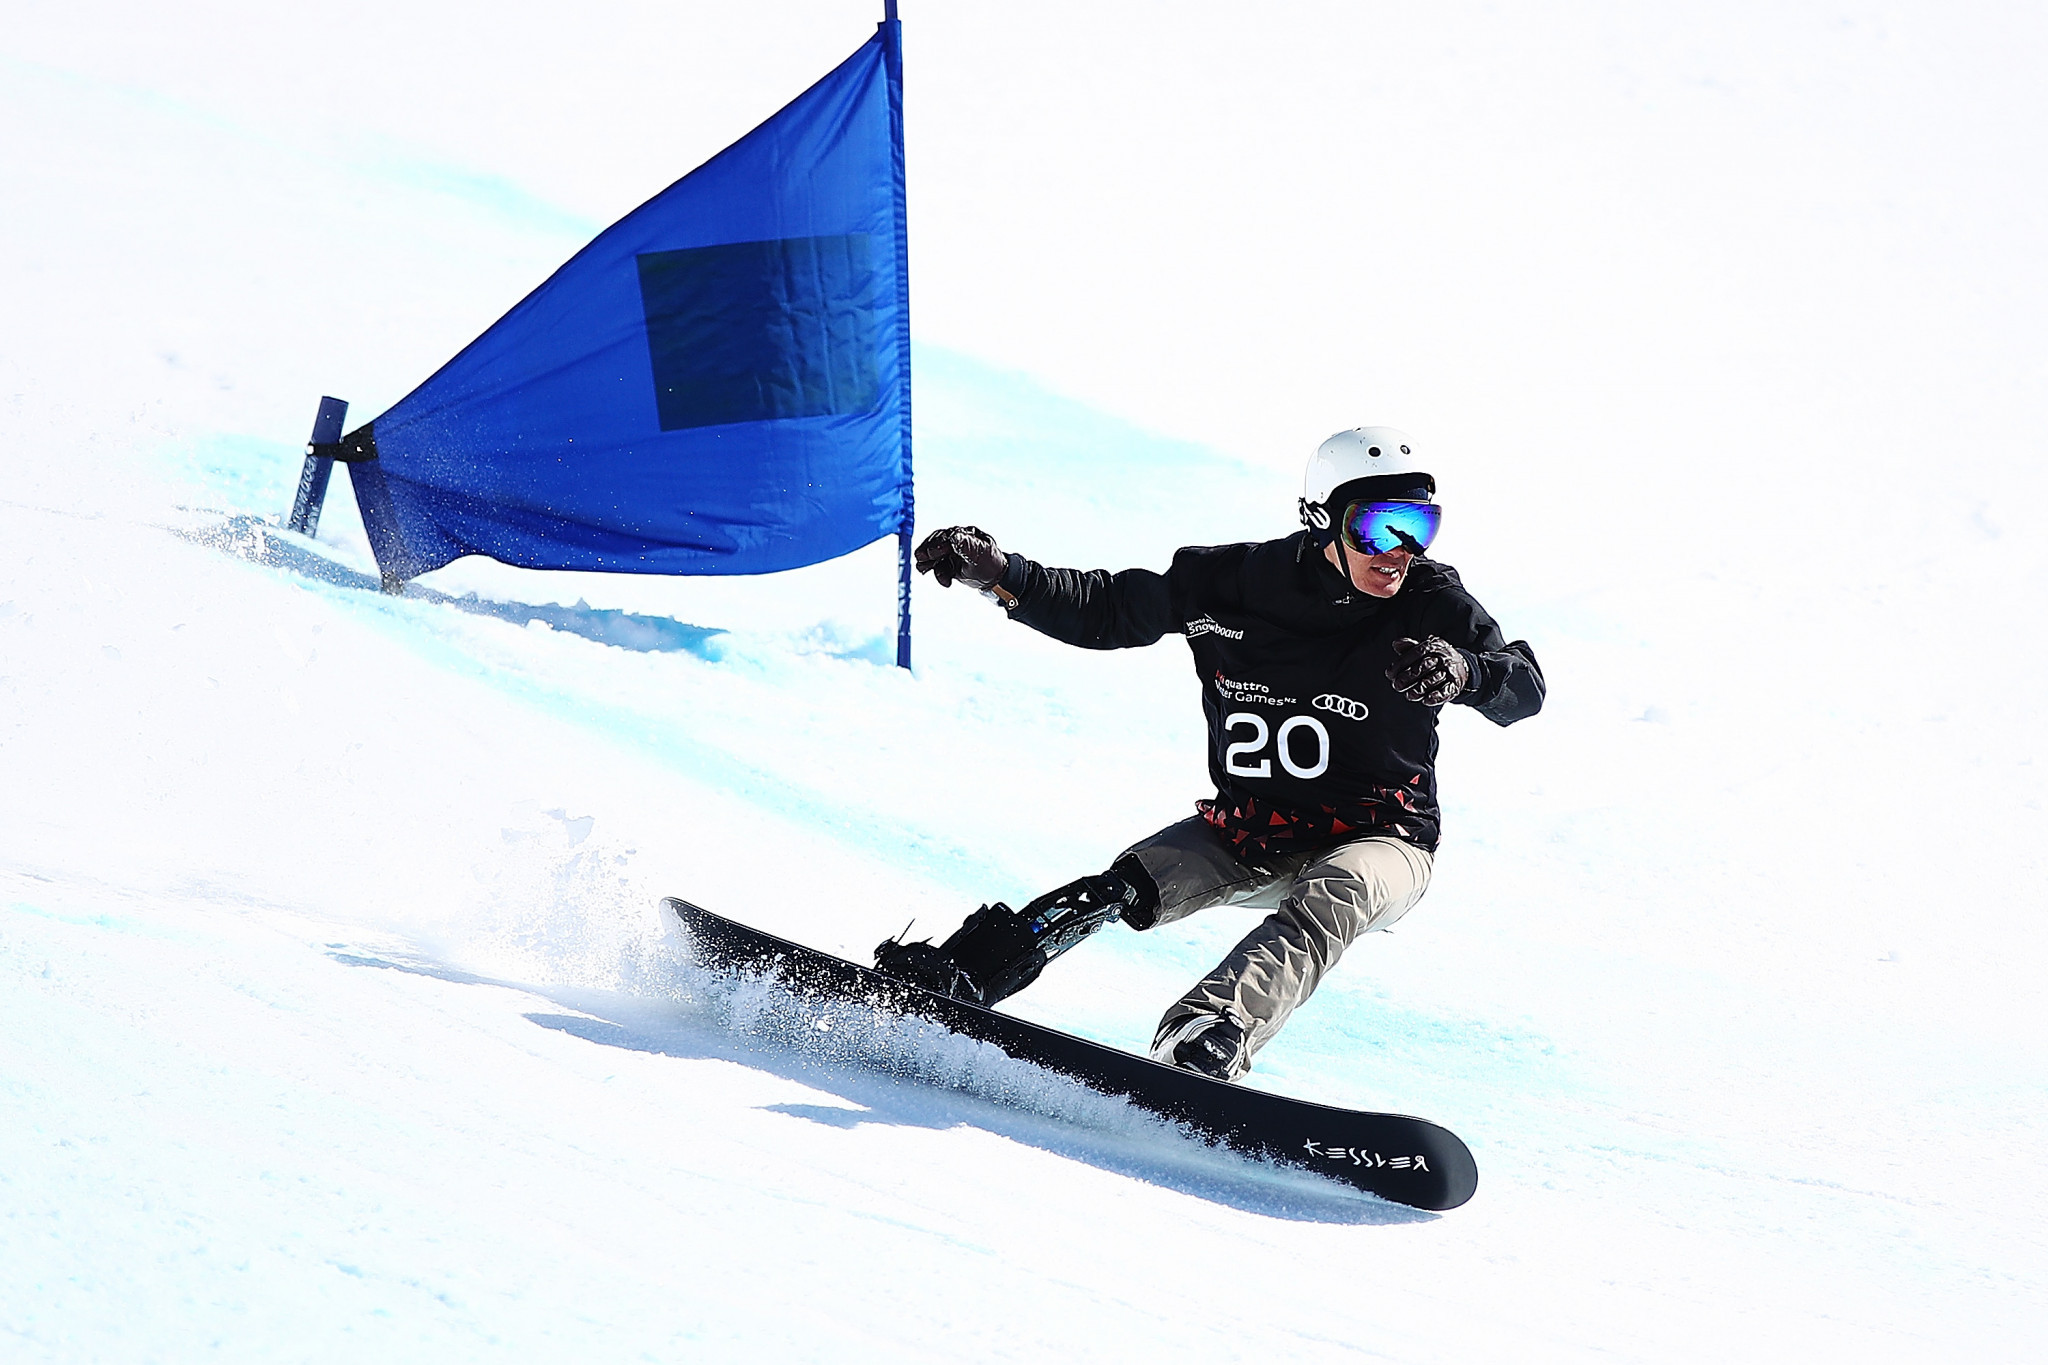 Para-snowboard will be part of the World Para Snow Sports Championships too ©Getty Images